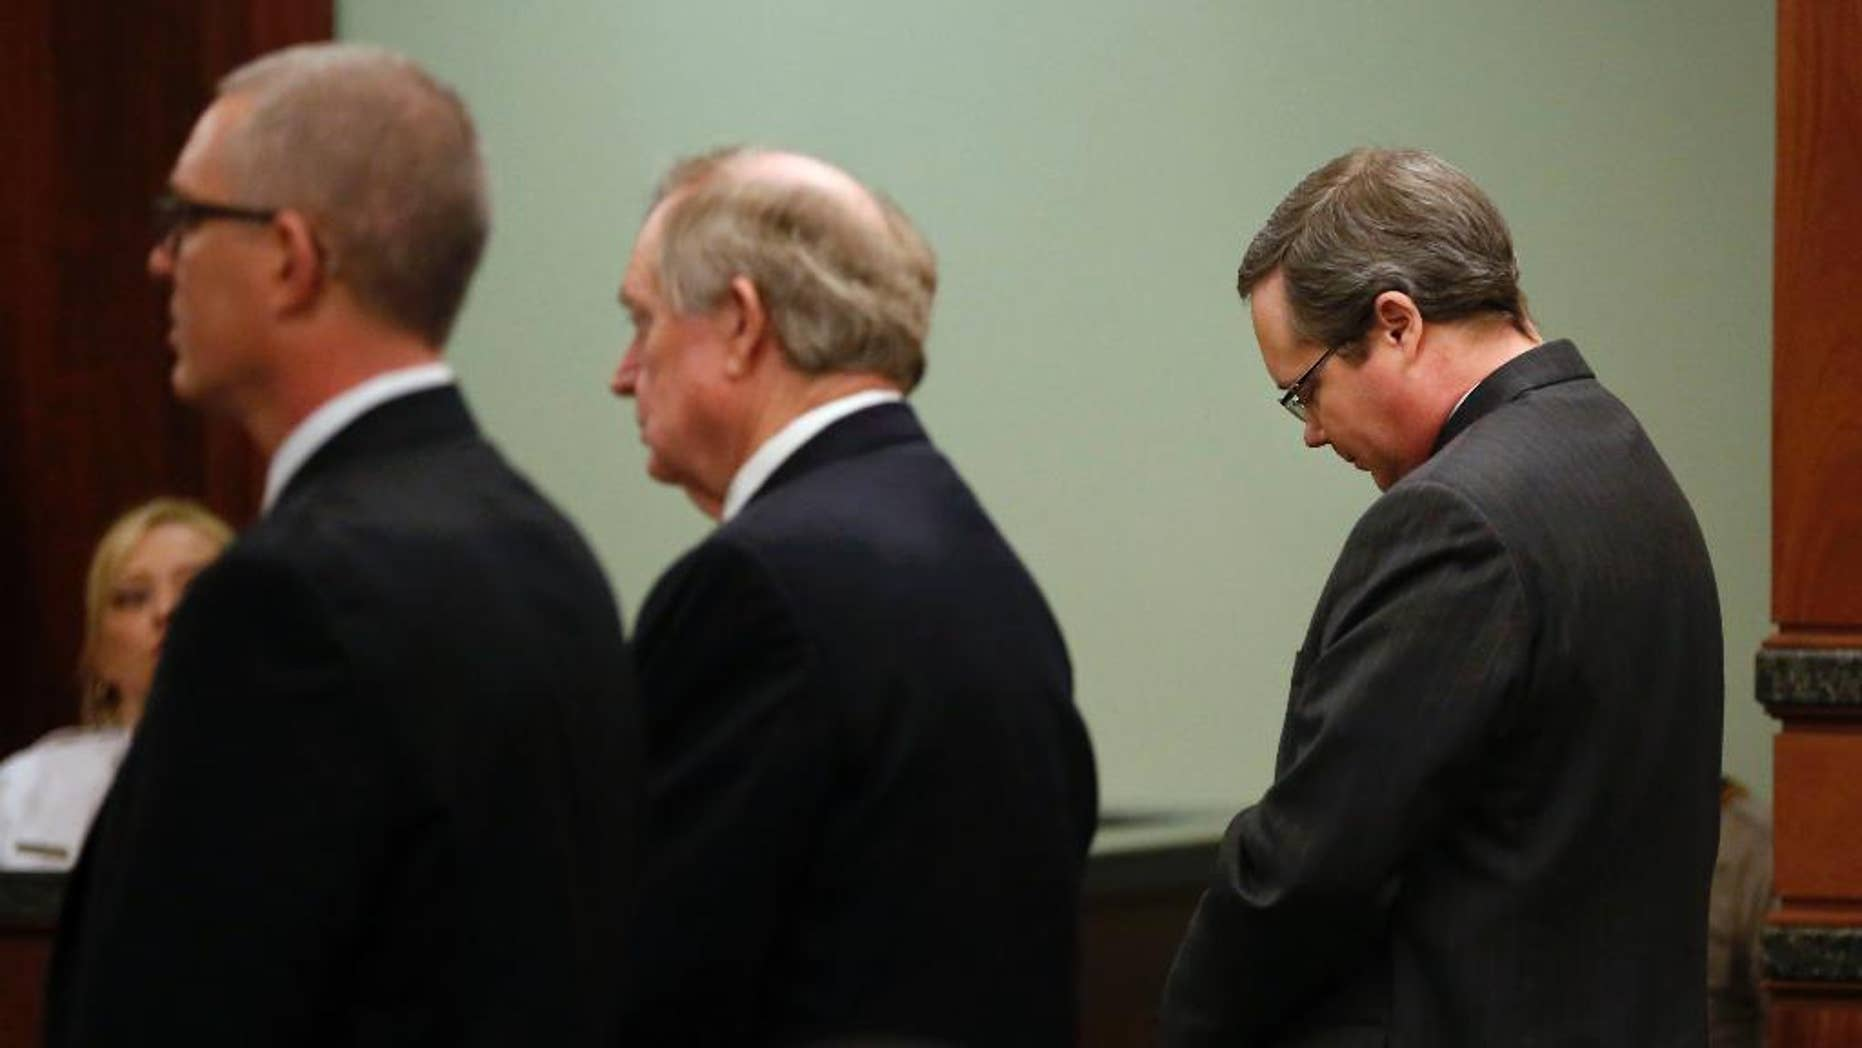 Eric Williams lowers his head as a guilty verdict is read during his capital murder trial at the Rockwall County Courthouse in Rockwall, Texas, on Thursday, Dec. 4, 2014.  The jury convicted Williams, a former public official, in the 2013 murder of Cynthia McLelland and her husband Kaufman County District Attorney Mike McLelland.  Williams now faces a potential death sentence.   (AP Photo/The Dallas Morning News, Pool)